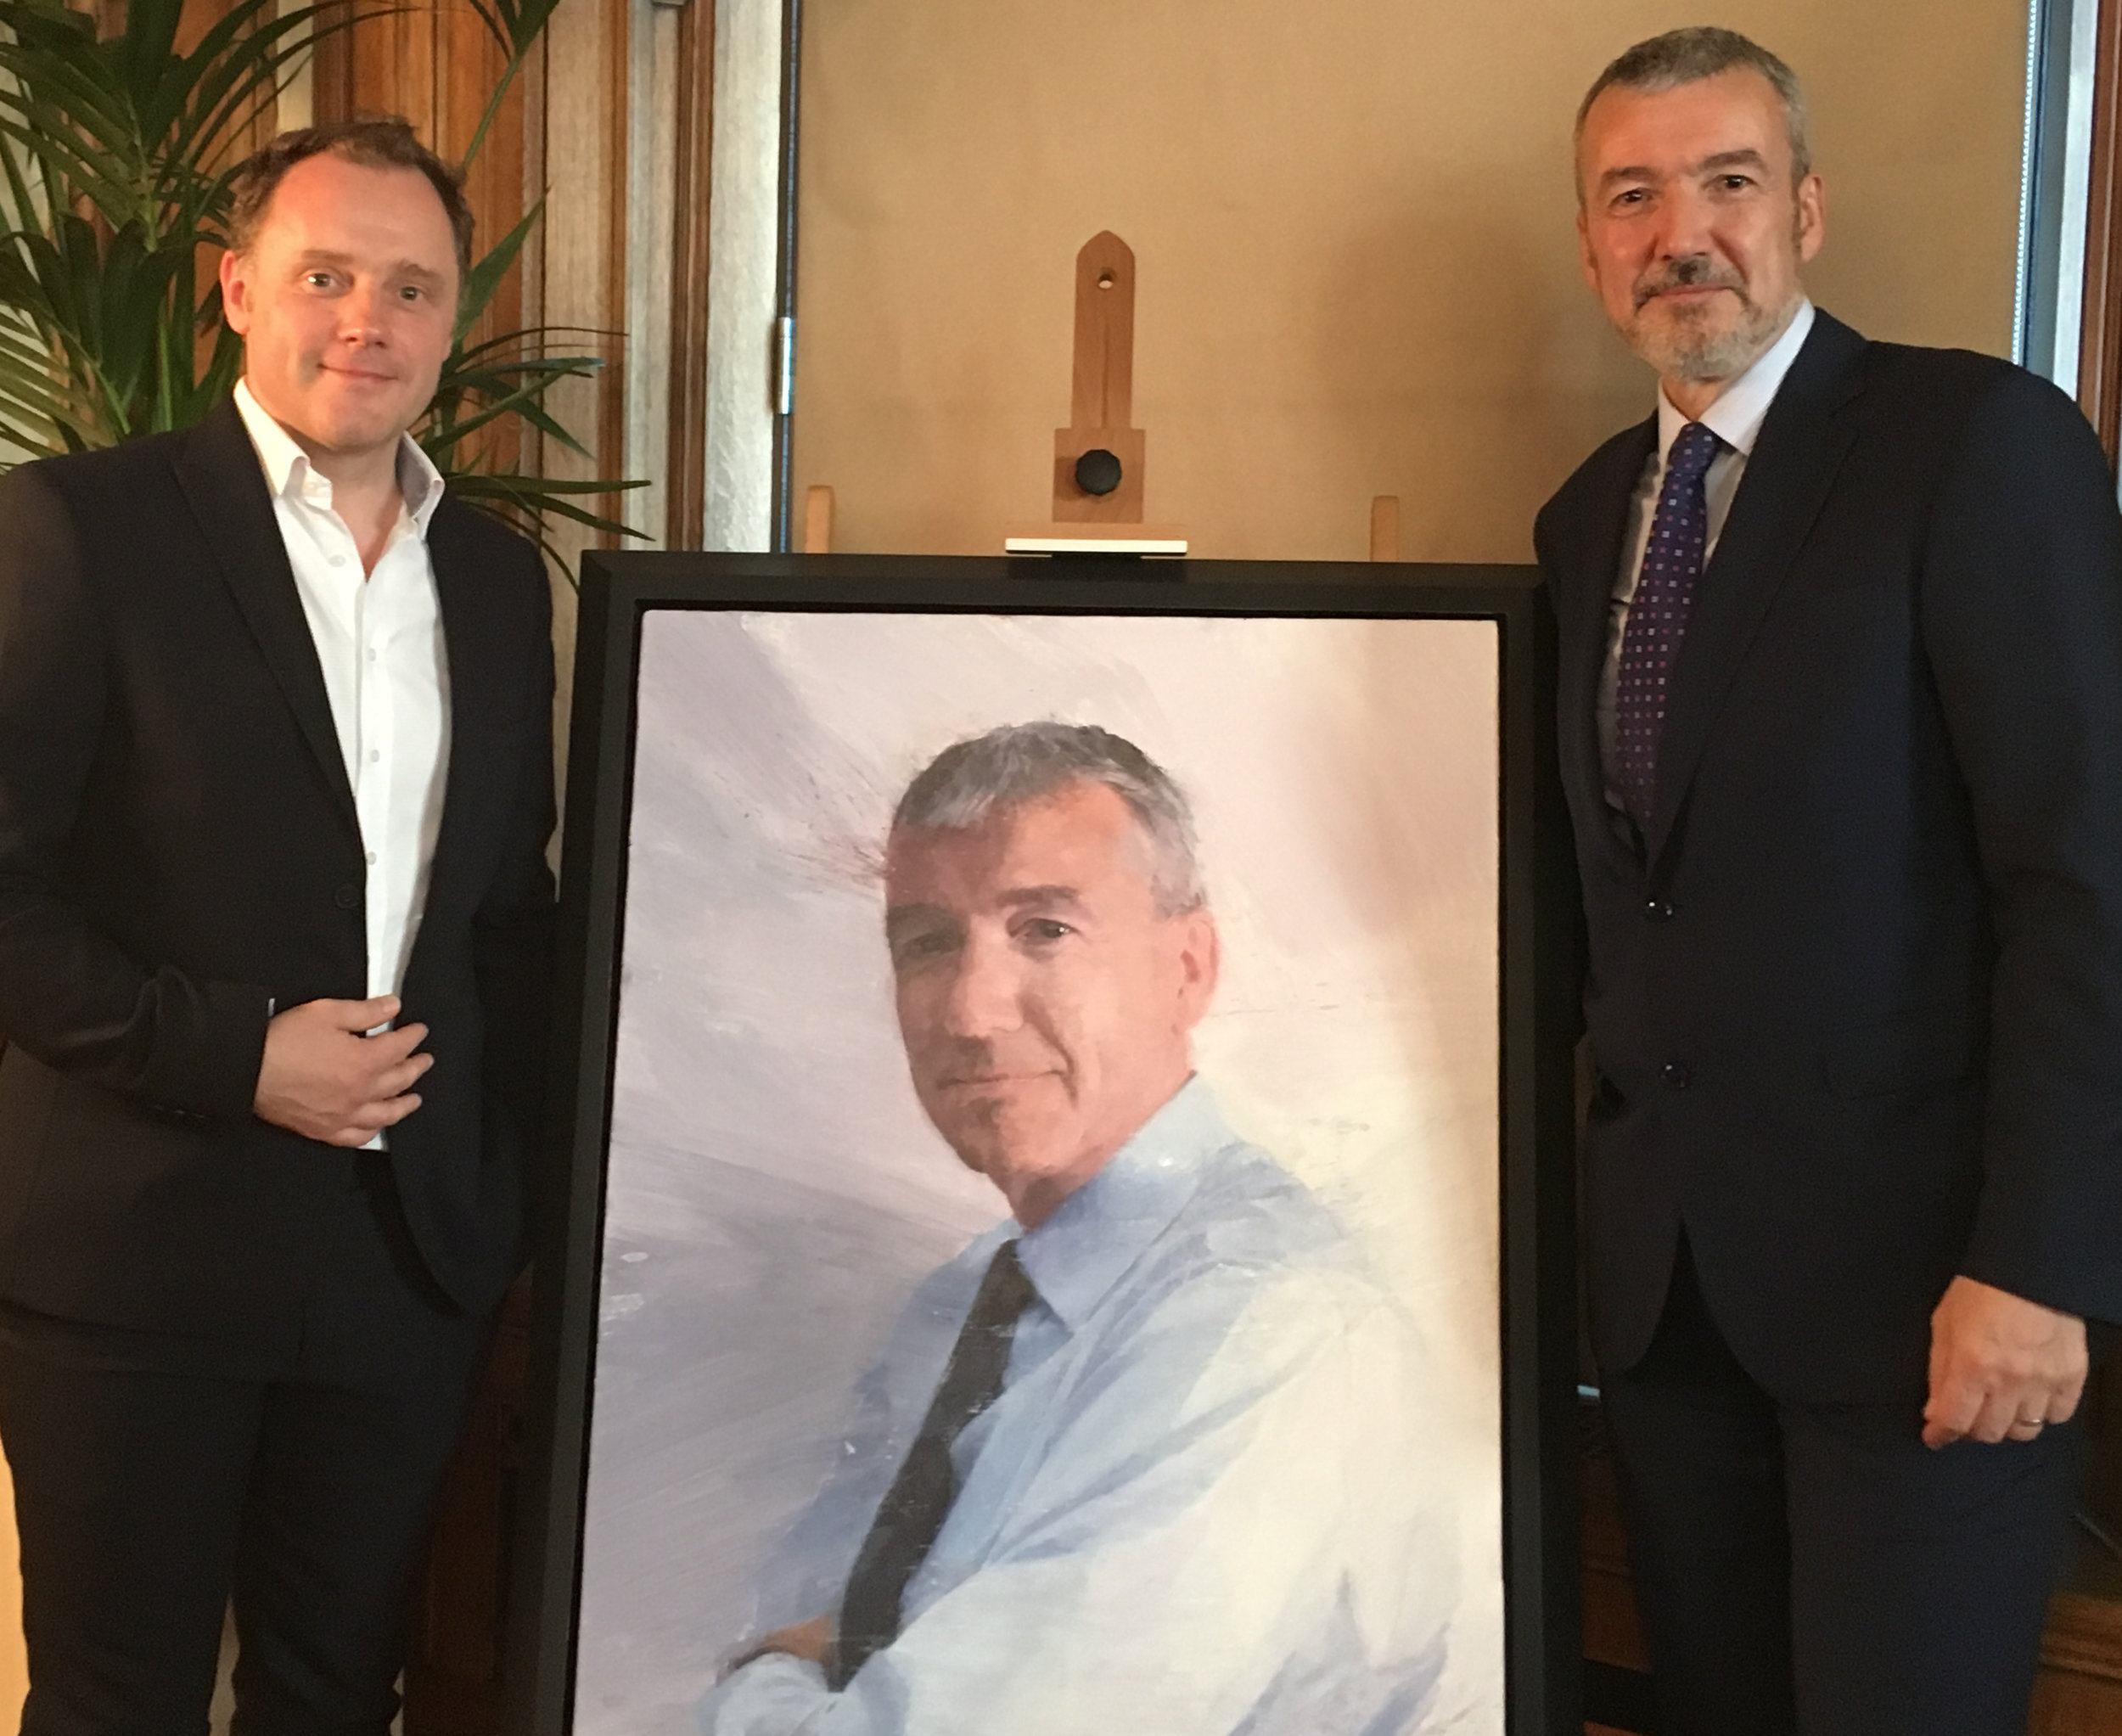 Myself and David Nish with his portrait at the unveiling